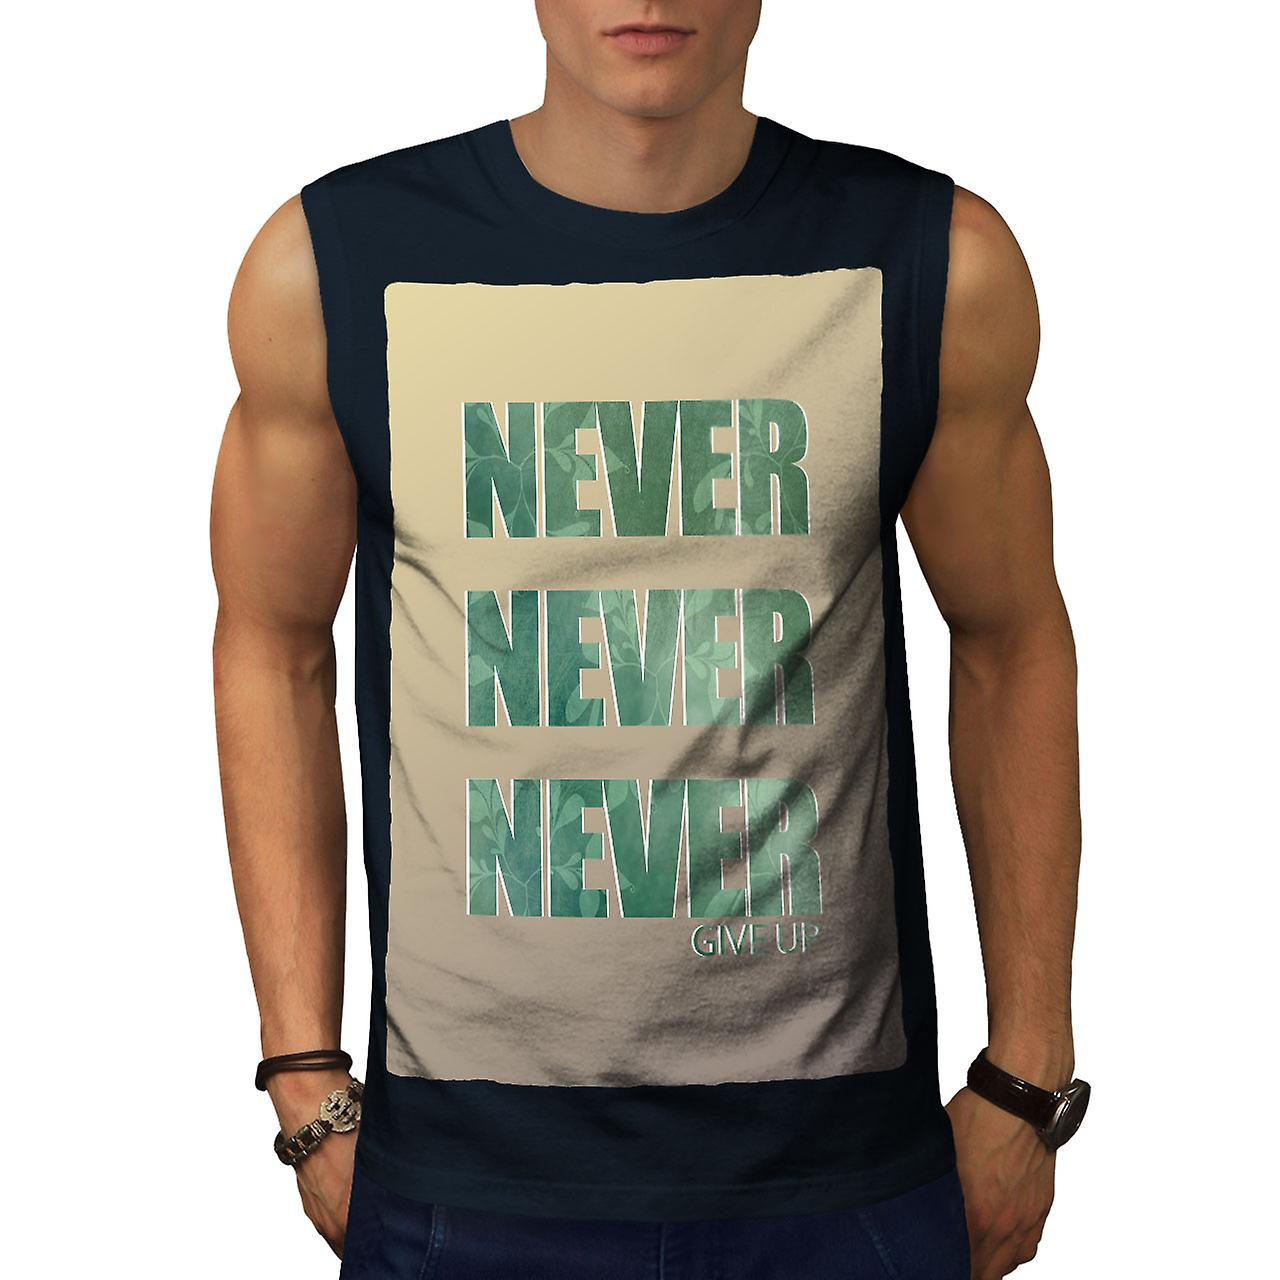 Never give up fashions 12 Common Sexually Transmitted Diseases (STDs) In Women